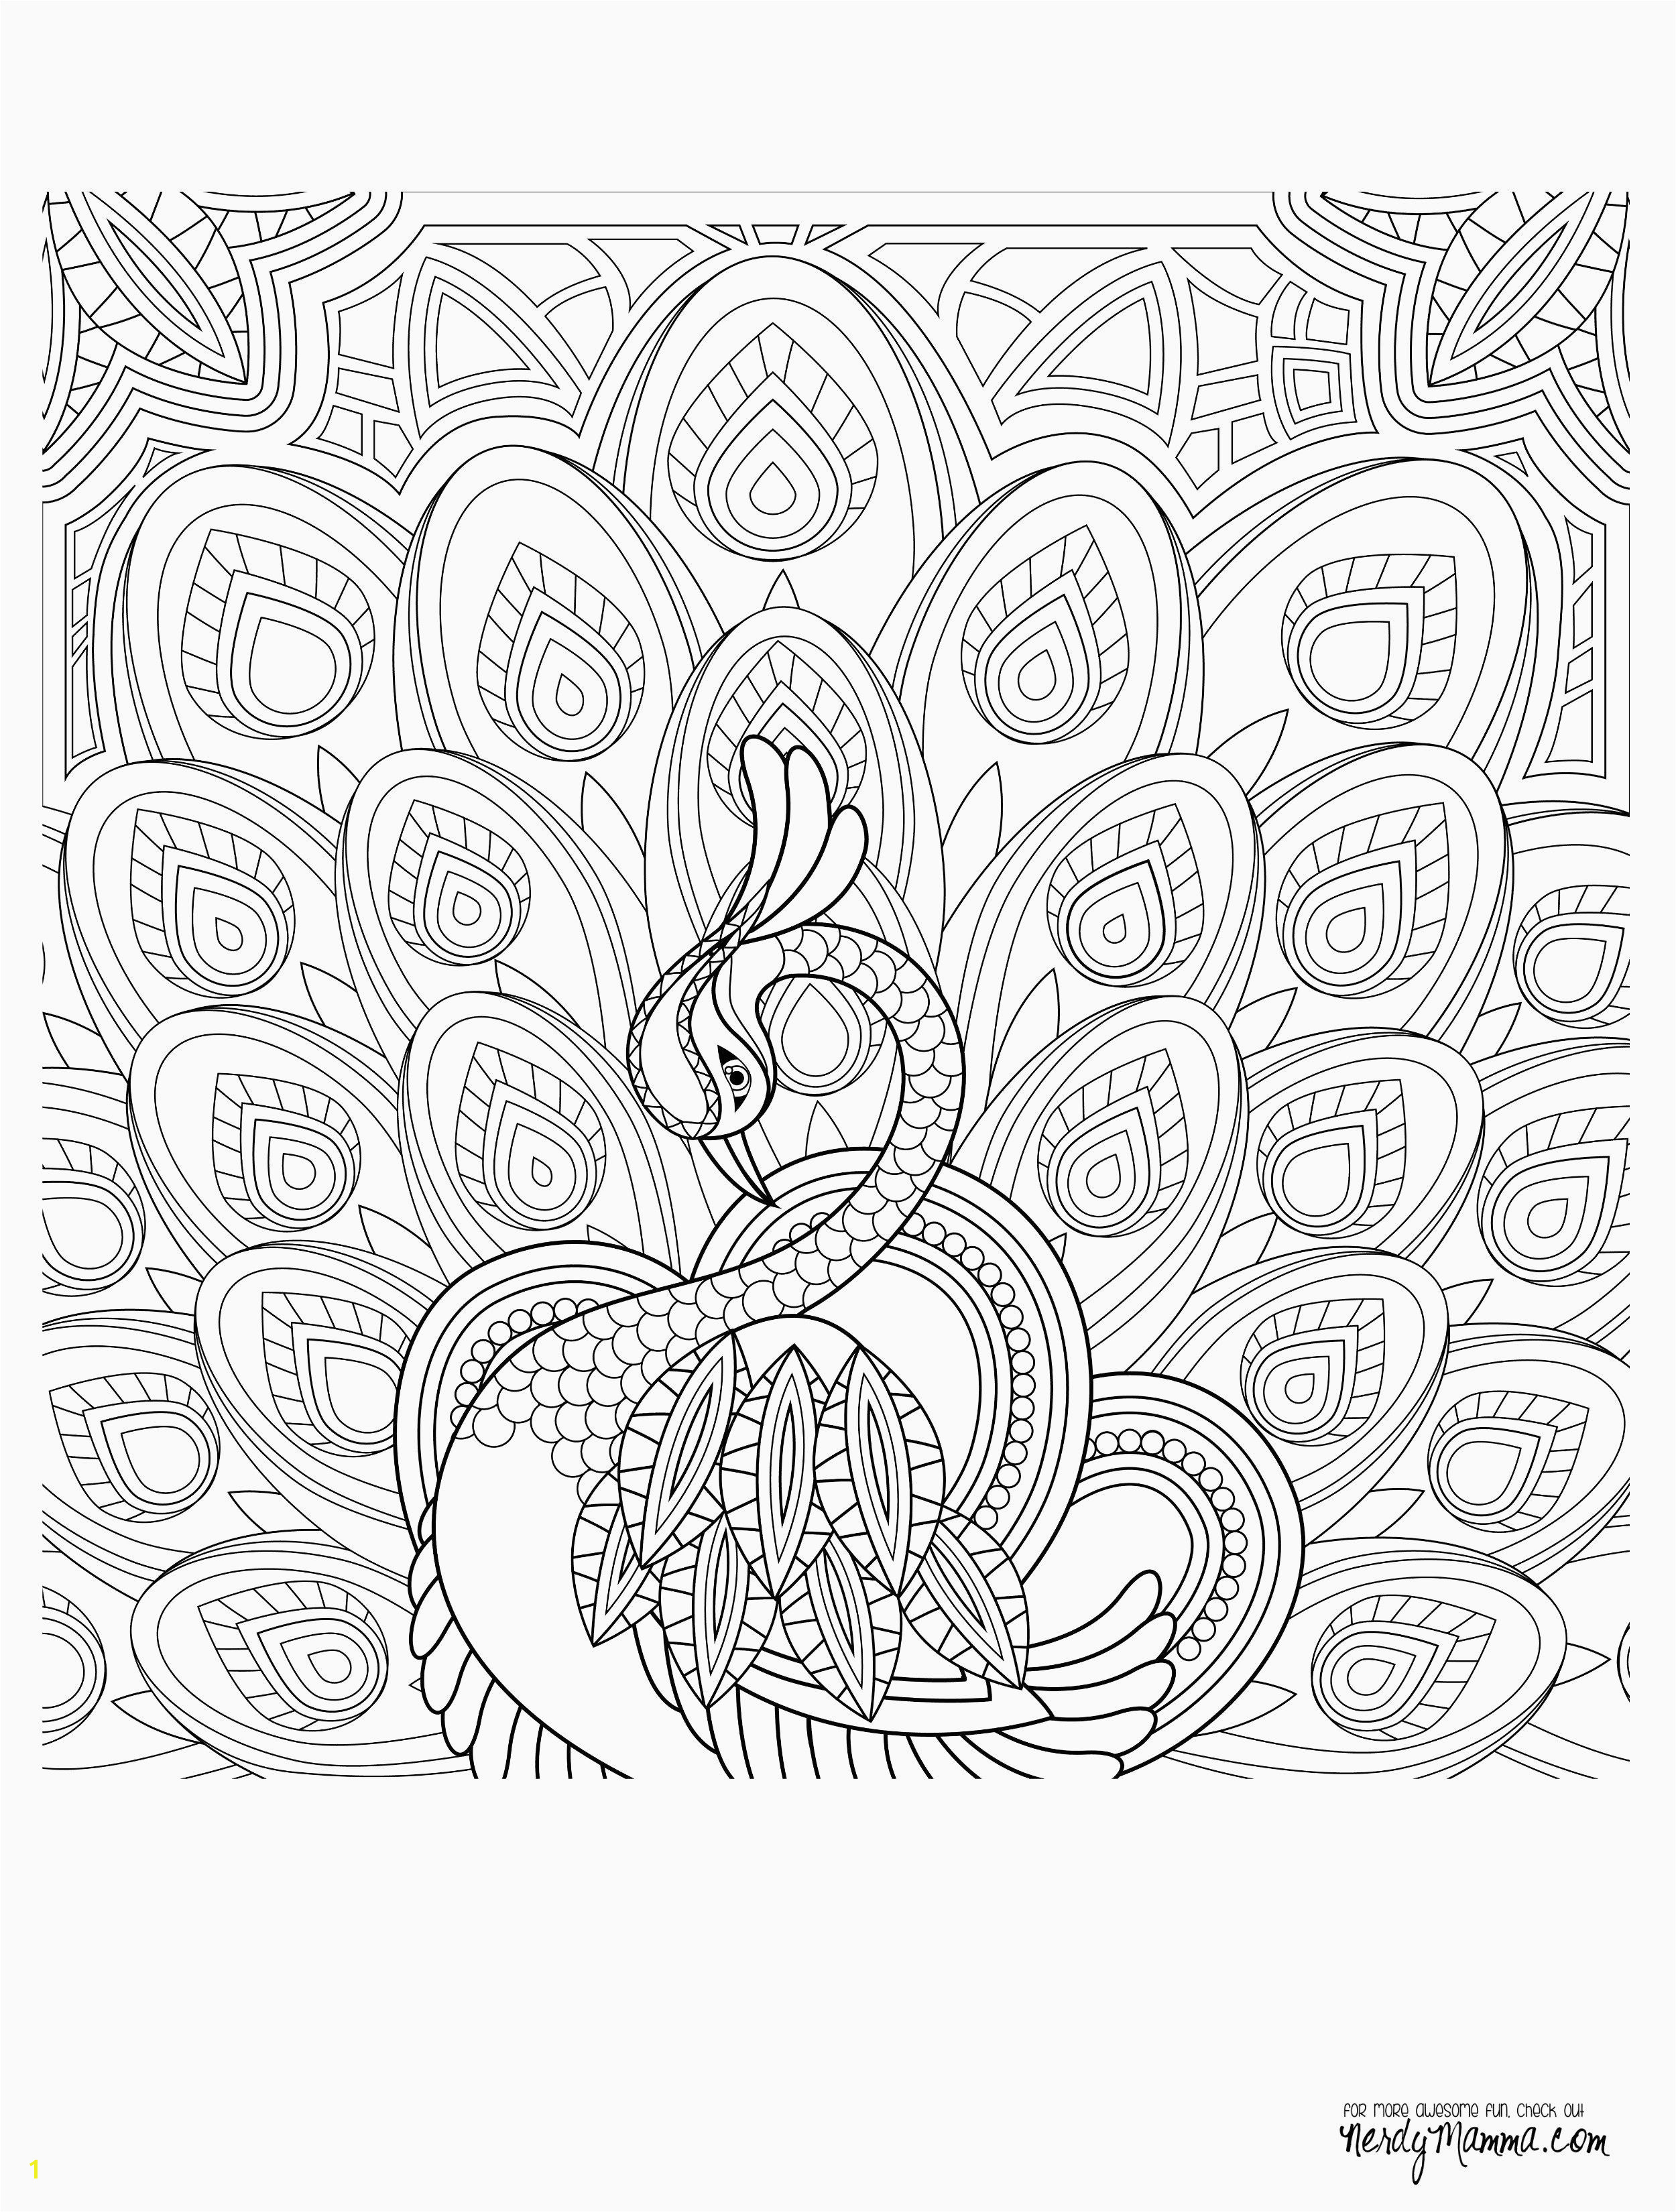 Printable Adult Color Pages Free Printable Coloring Pages for Adults Best Awesome Coloring